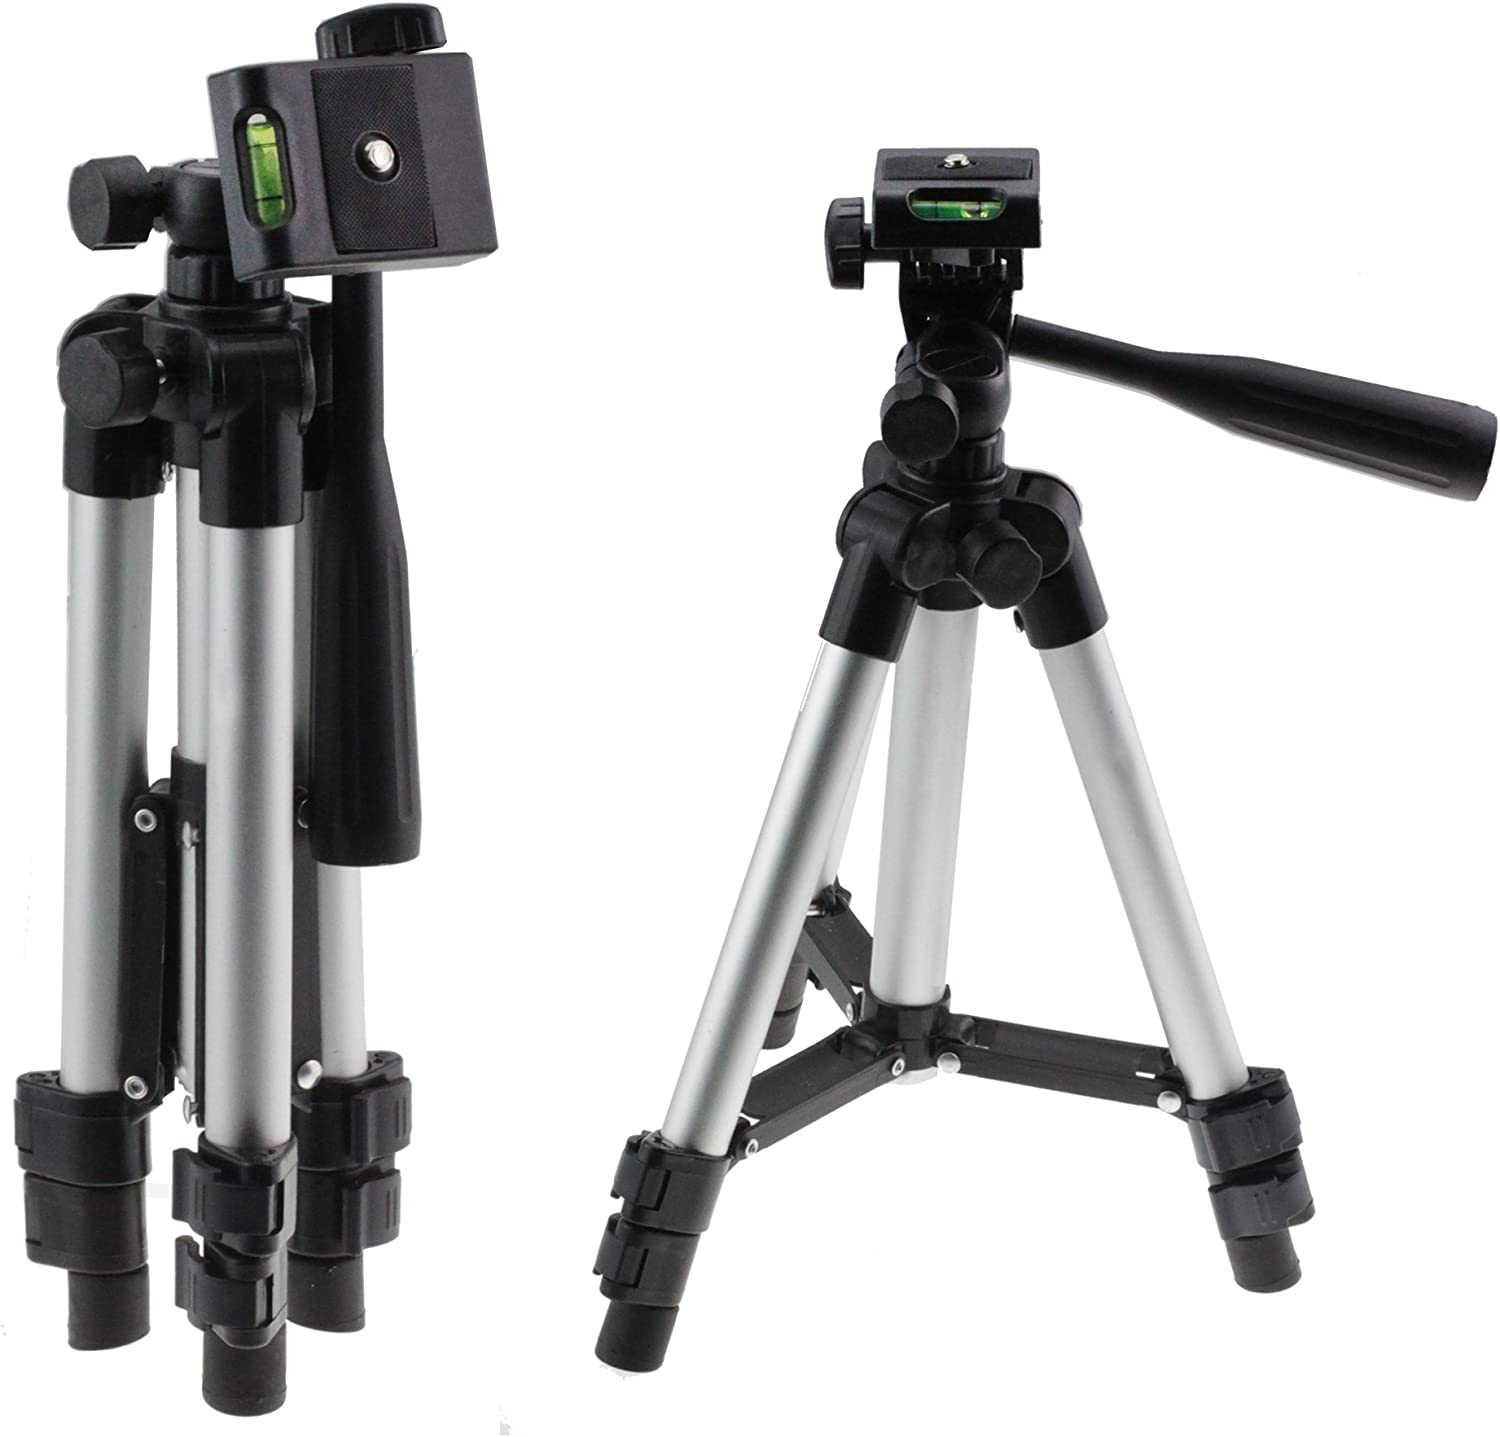 Navitech Lightweight Max 62% OFF Aluminium Tripod Kenuo with Compatible The discount